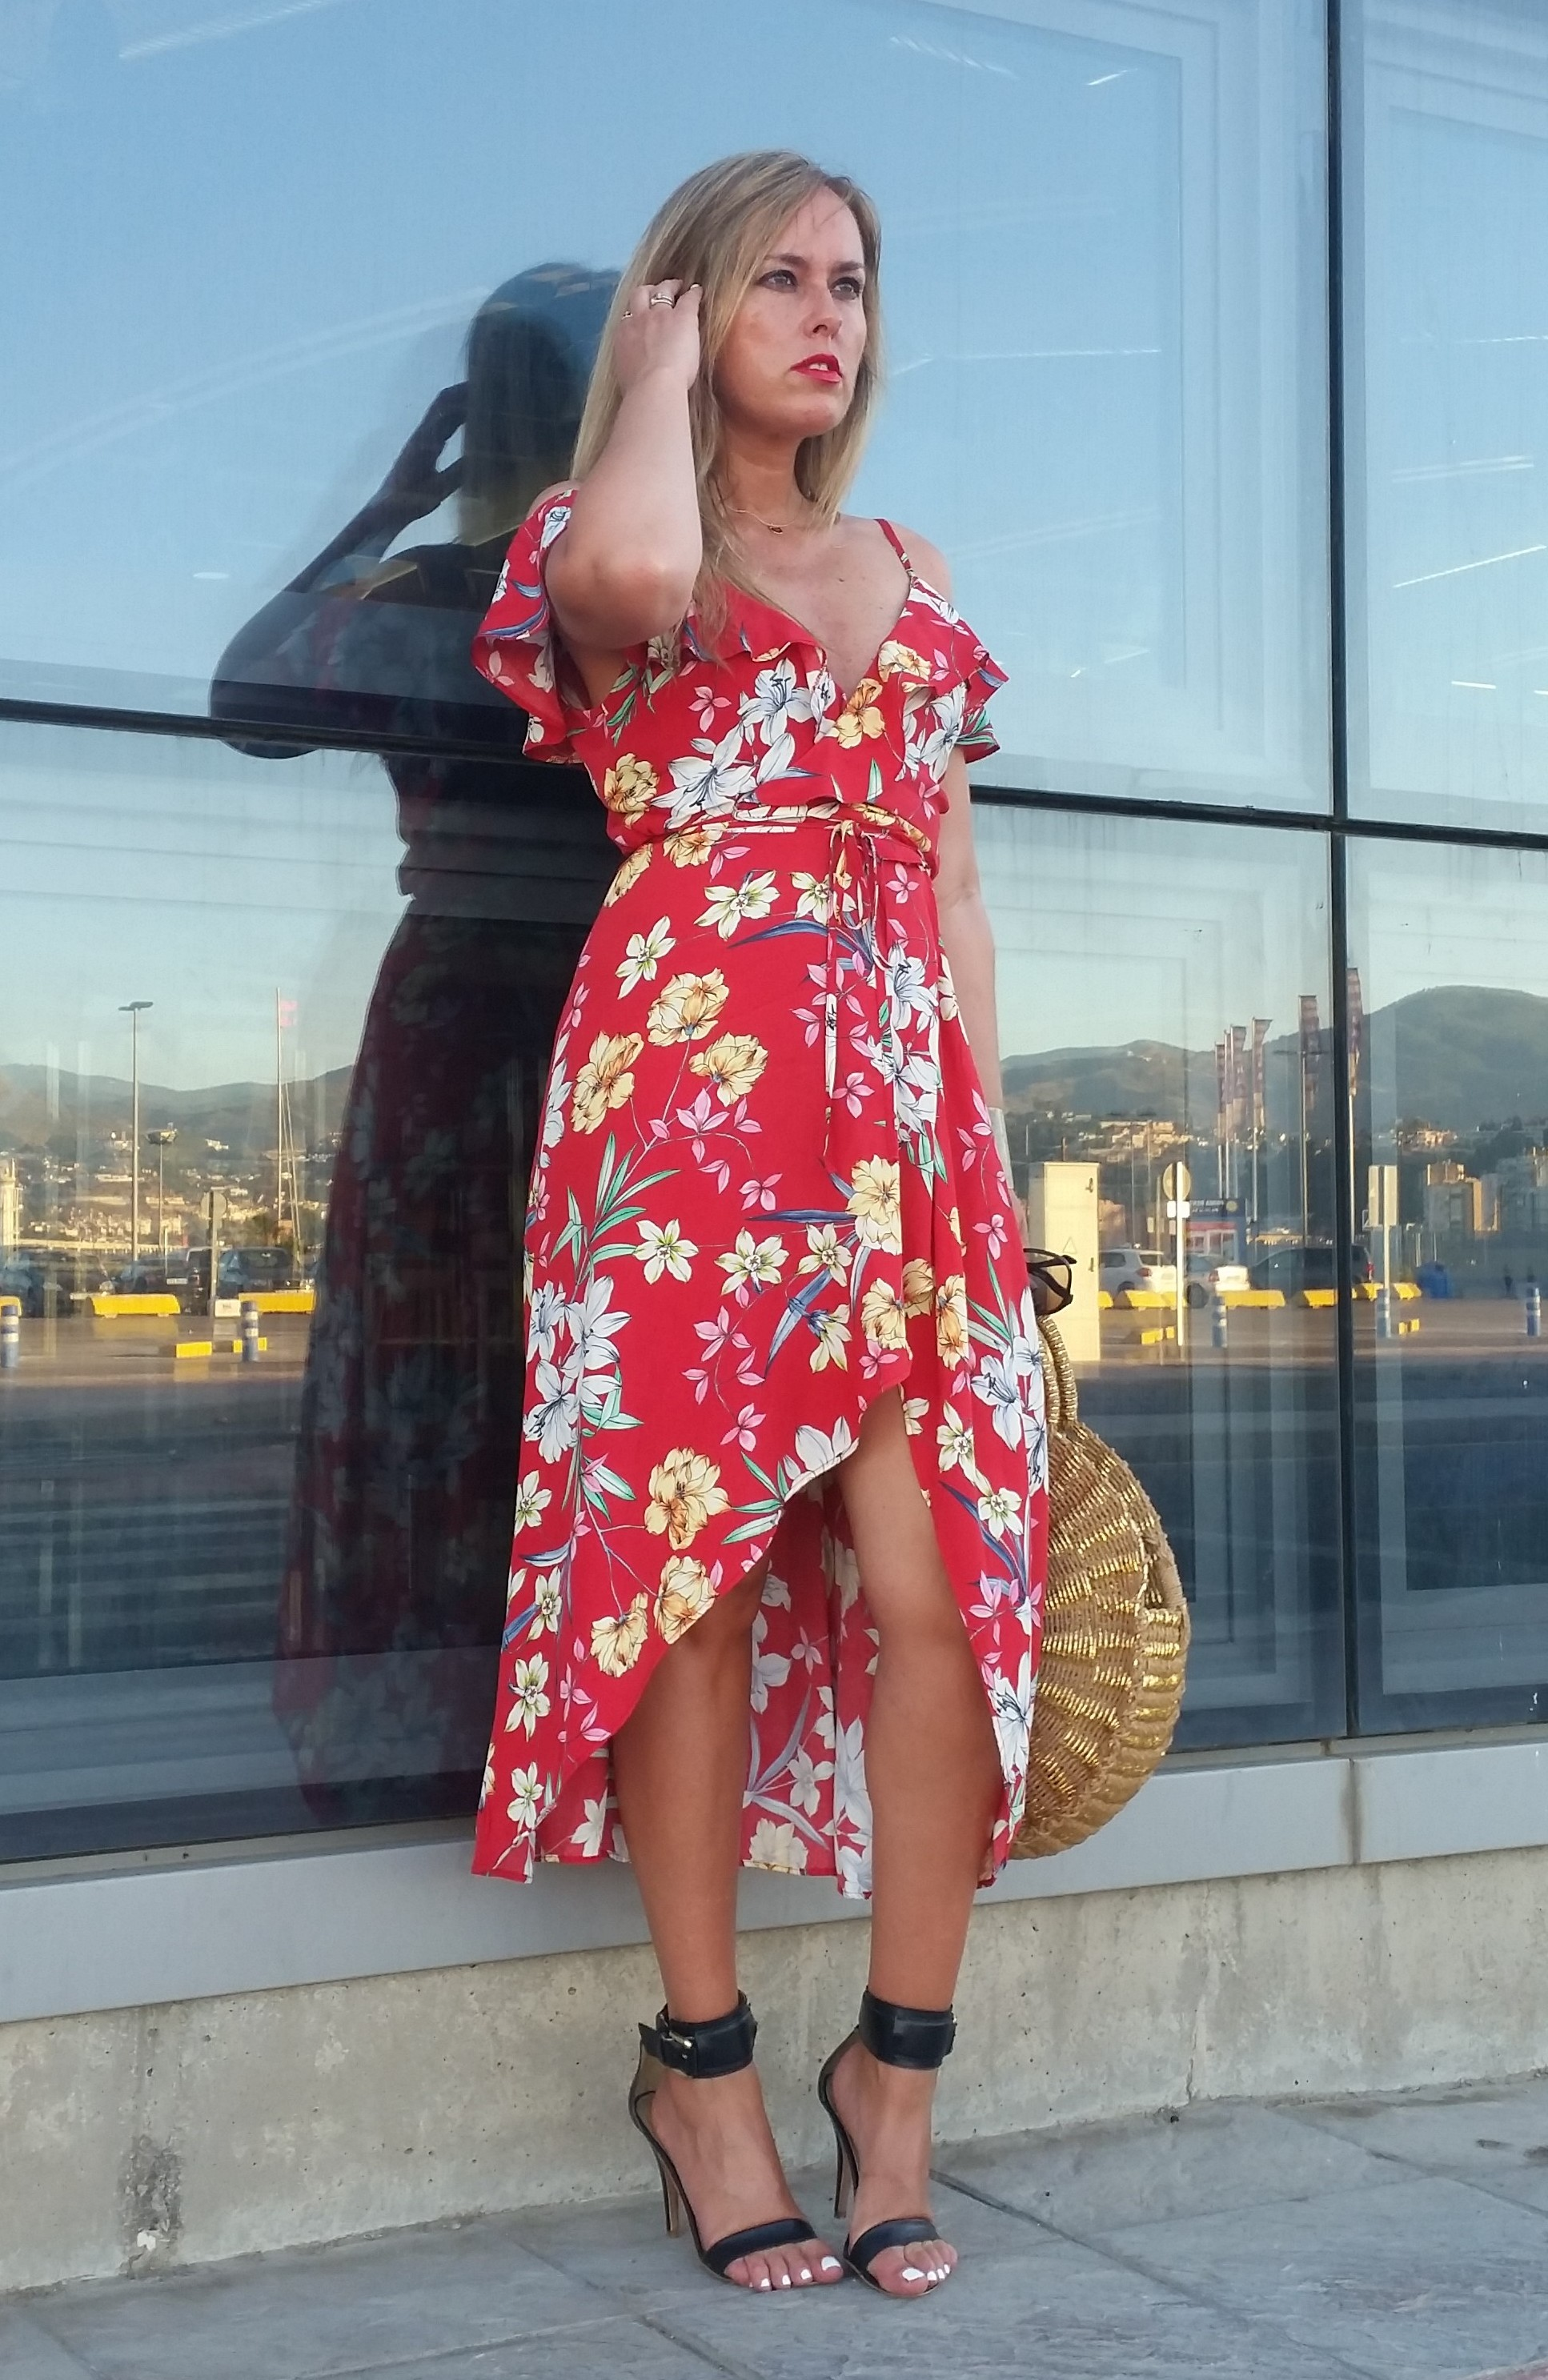 LADY IN RED WRAP DRESS – Anonymous blondie in fashion